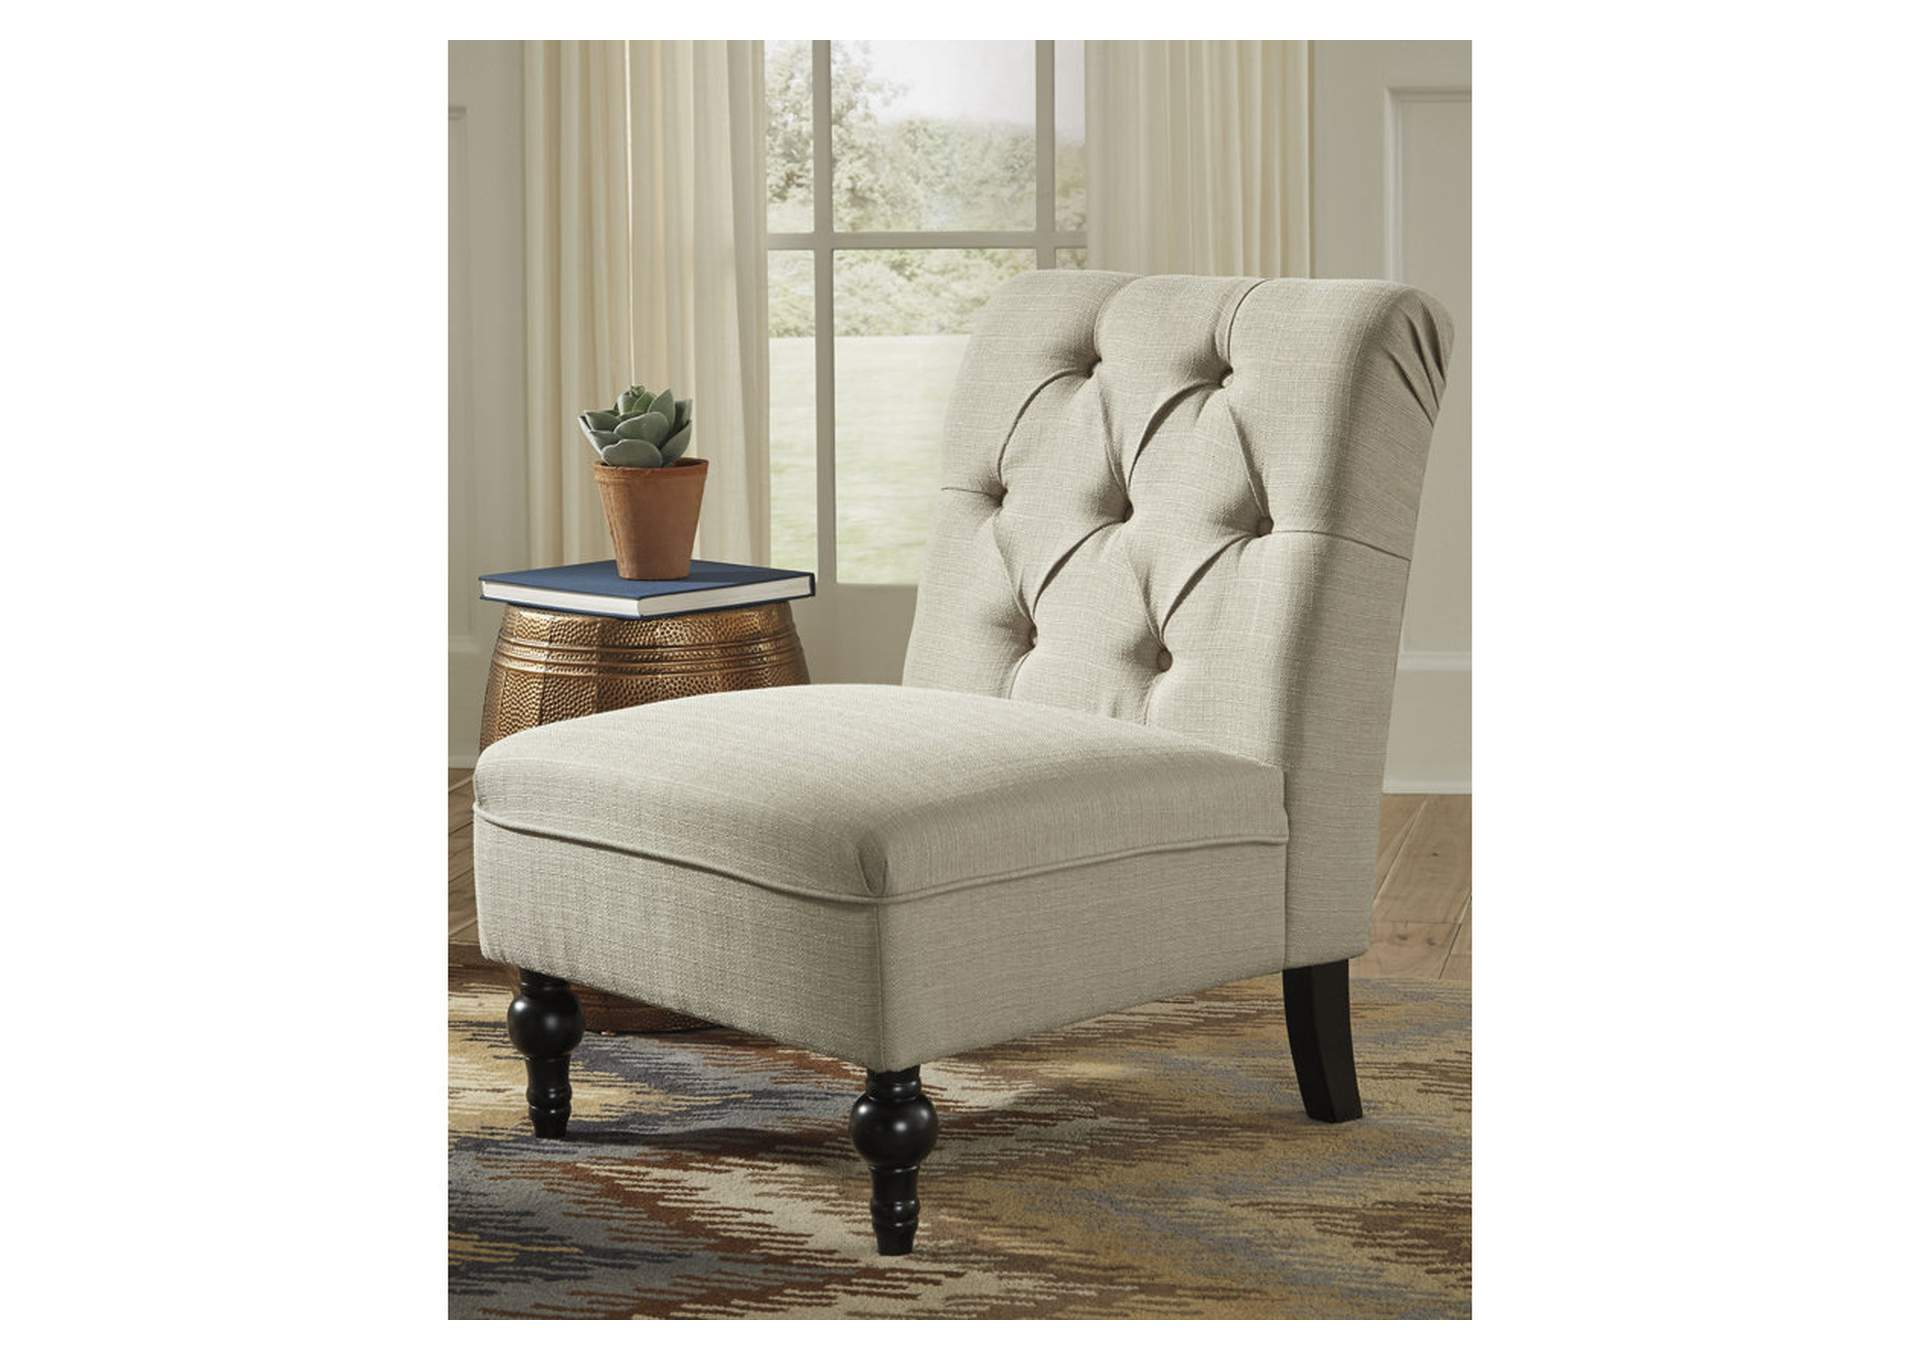 Degas Oatmeal Accent Fabric Chair,Signature Design By Ashley